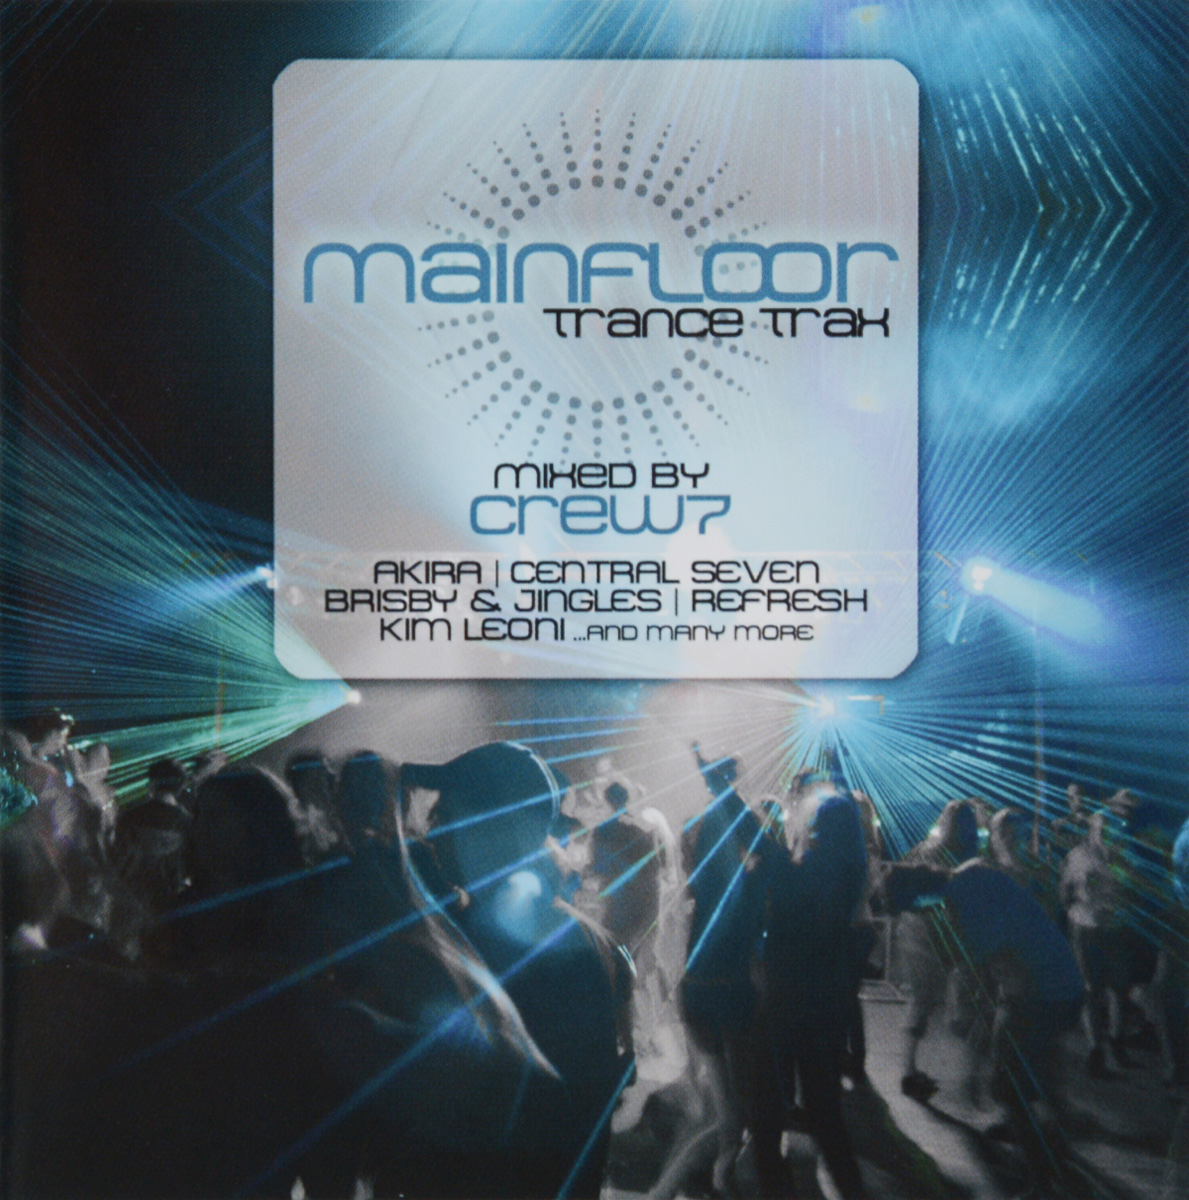 Mainfloor Trance Trax Mixed By Crew 7